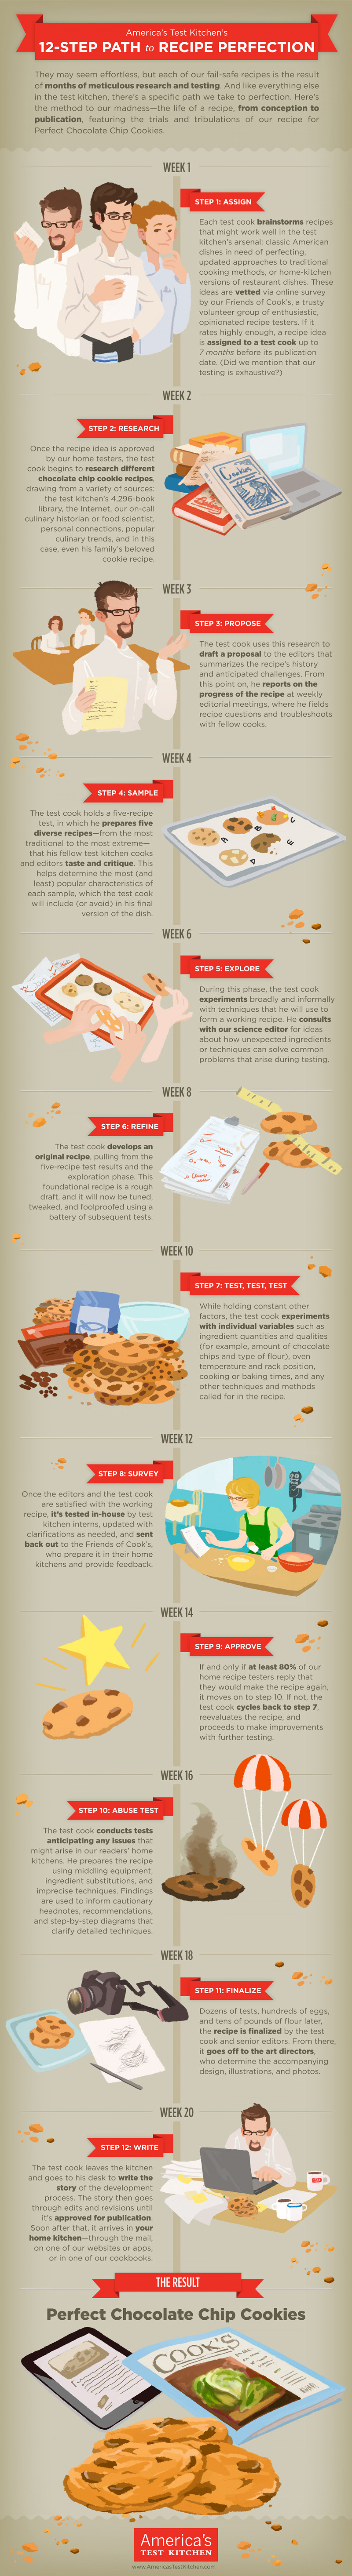 The 12-Step Path to Recipe Perfection Infographic